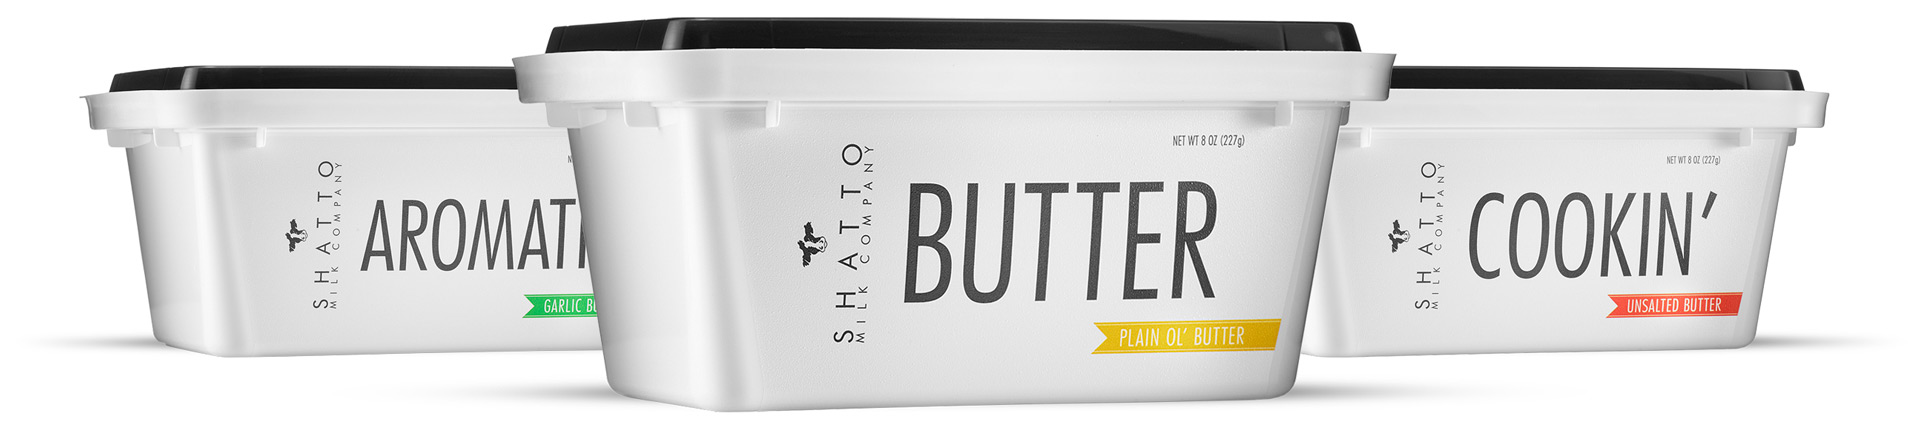 Three tubs of Shatto Milk Butter –each with large lettering that says: AROMATIC, BUTTER and COOKIN'